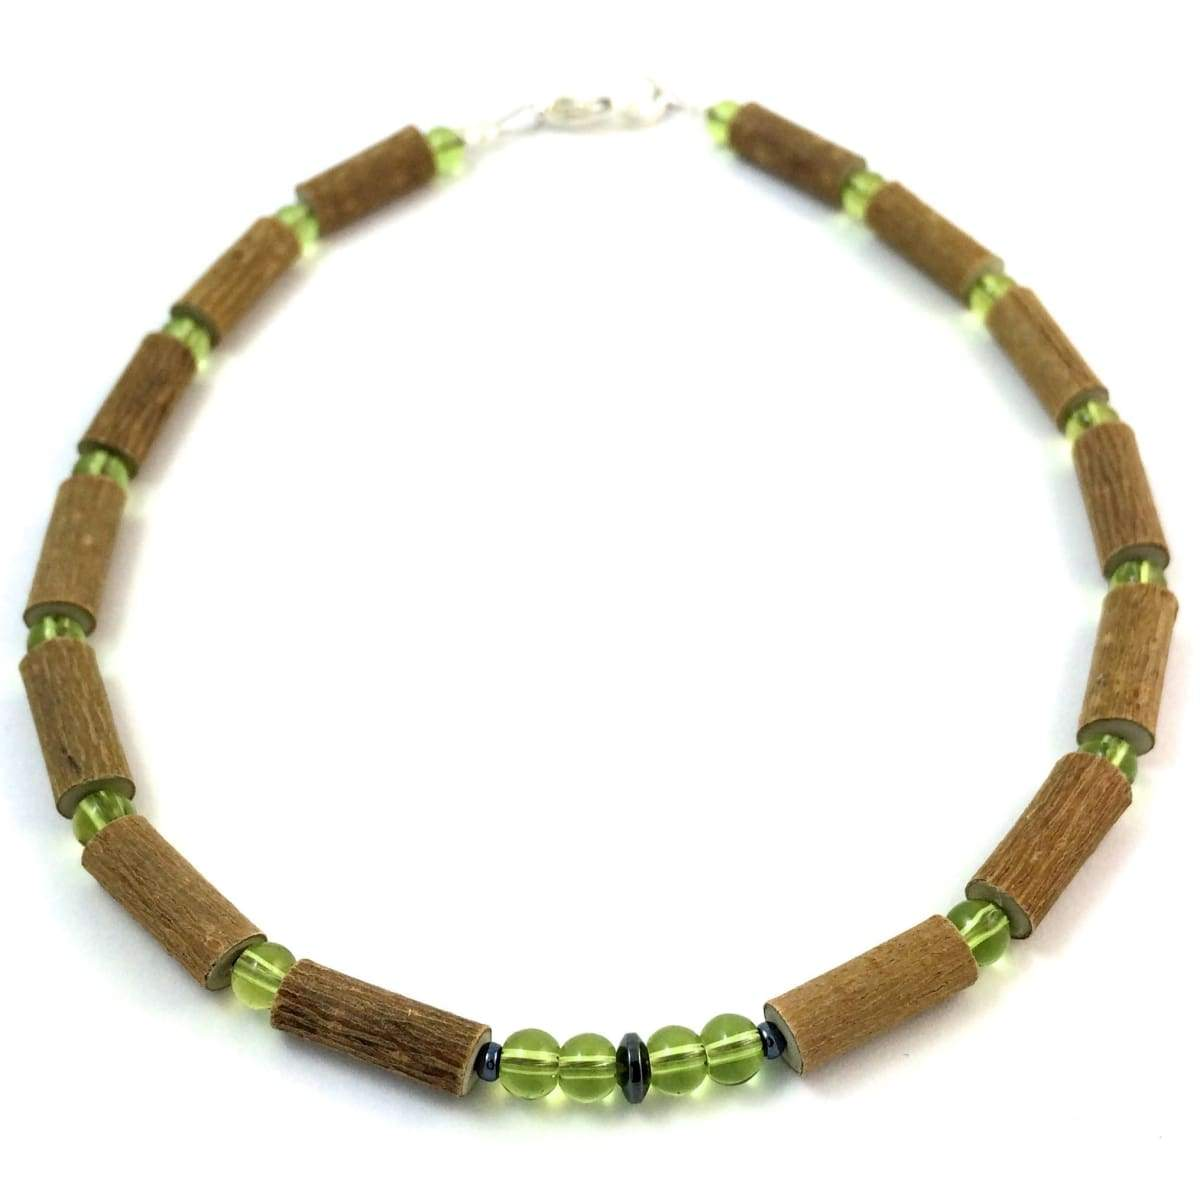 Hazel-Gemstone Green Peridot - 11 Necklace - Lobster Claw Clasp - Hazelwood & Gemstone Jewelry